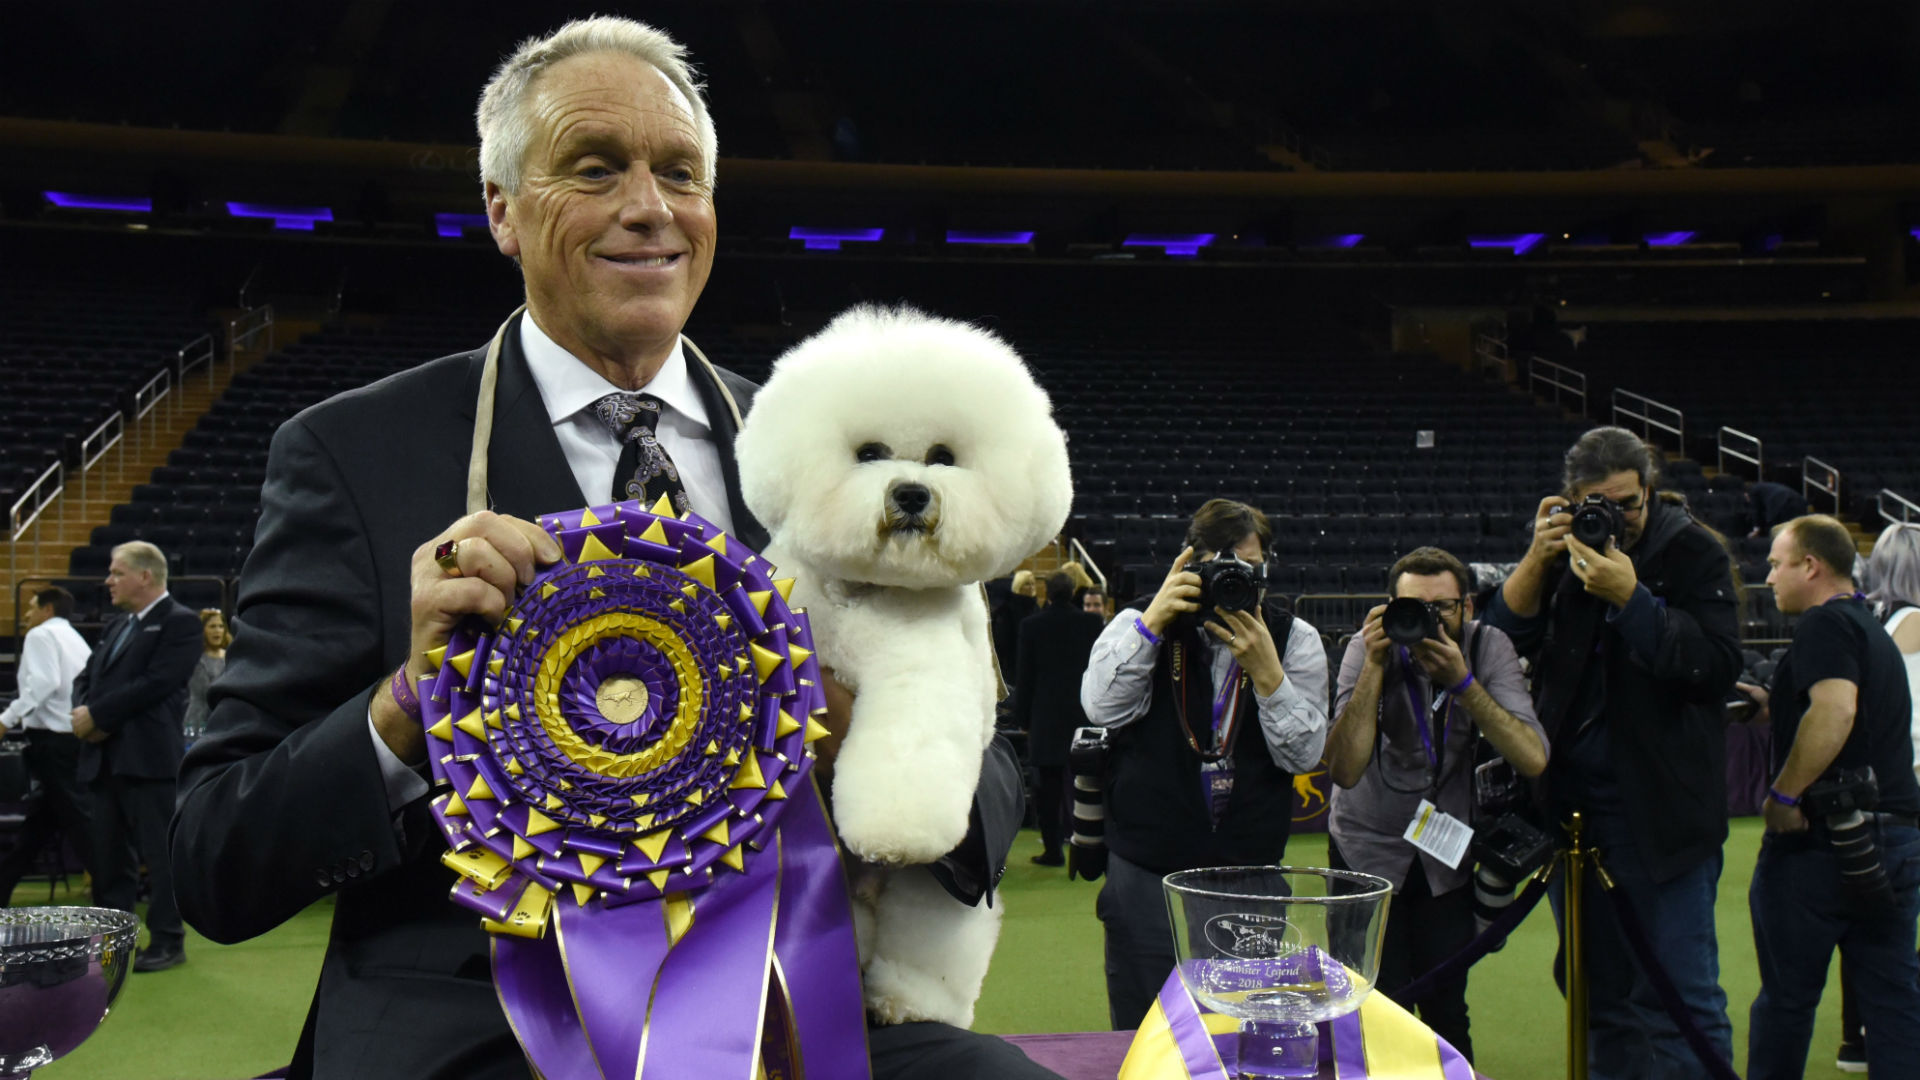 Westminster Kennel Club's annual dog show trots into to NY